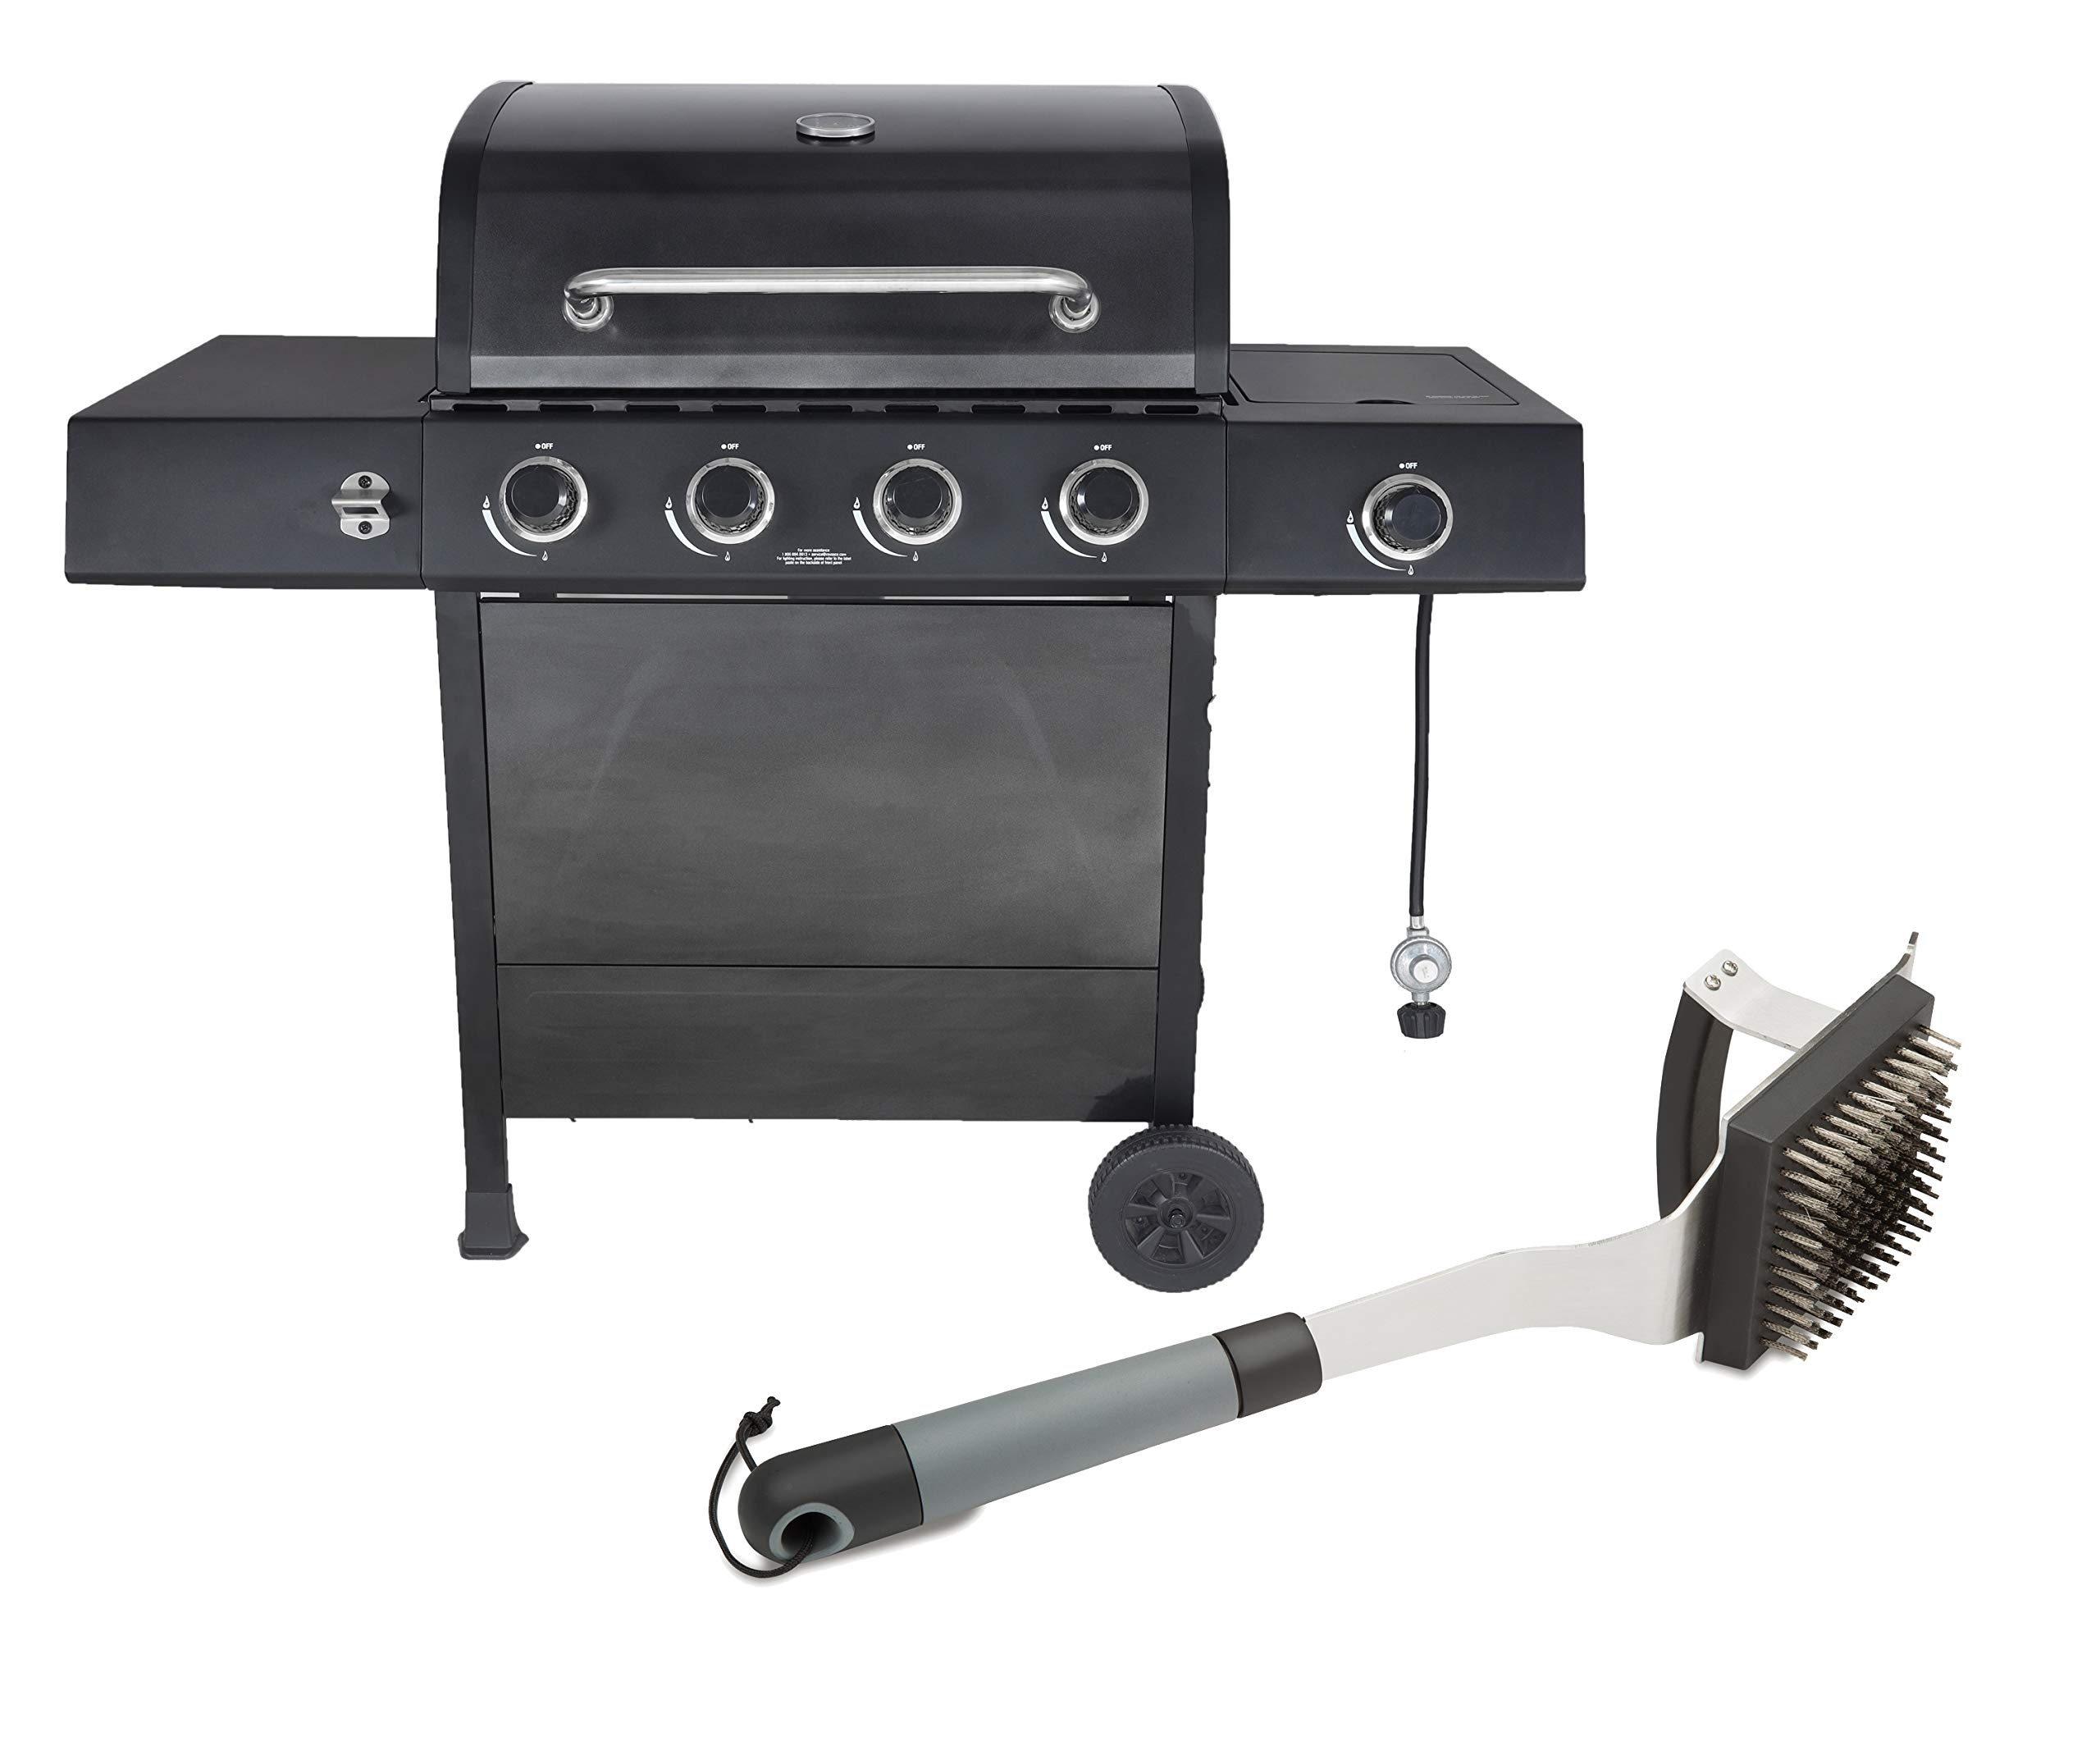 RevoAce 4-Burner Gas Grill with Side Burner, Pewter Bundle with Cuisinart Dual Grip Barbecue Grill Brush and Scraper by RevoAce + Cuisinart